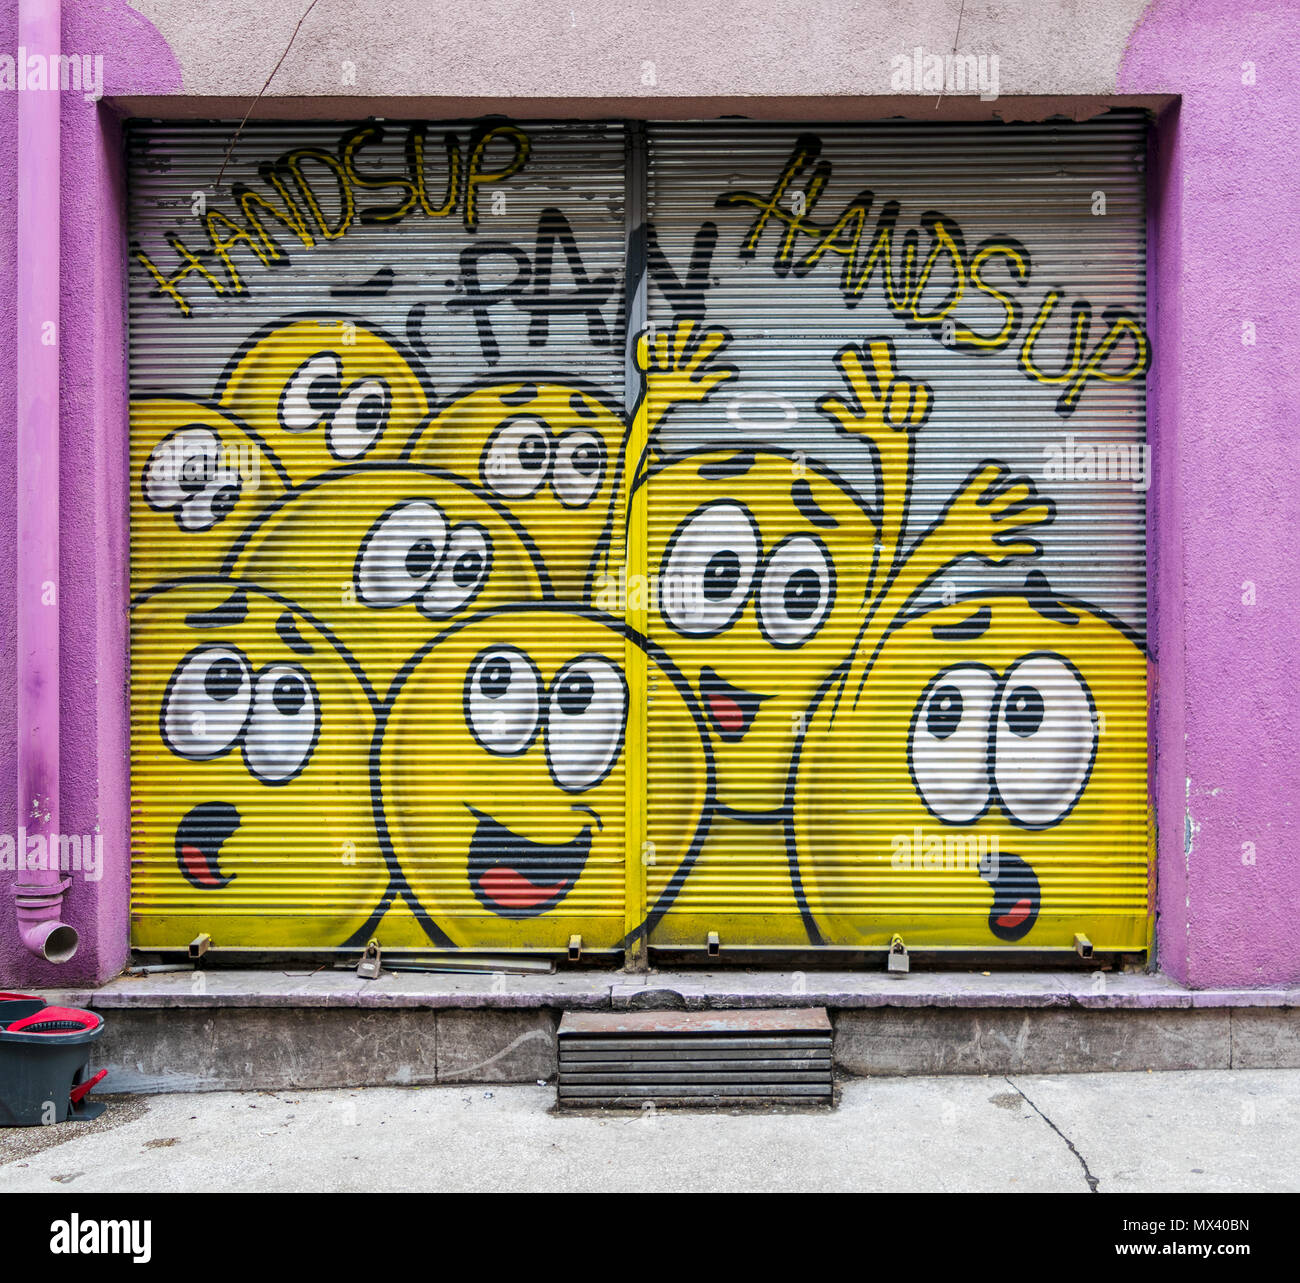 Istanbul, Turkey - April 18, 2017:  Closed shop exterior with metal door covered with colorful graffiti at Karakoy district, Istanbul, Turkey - Stock Image